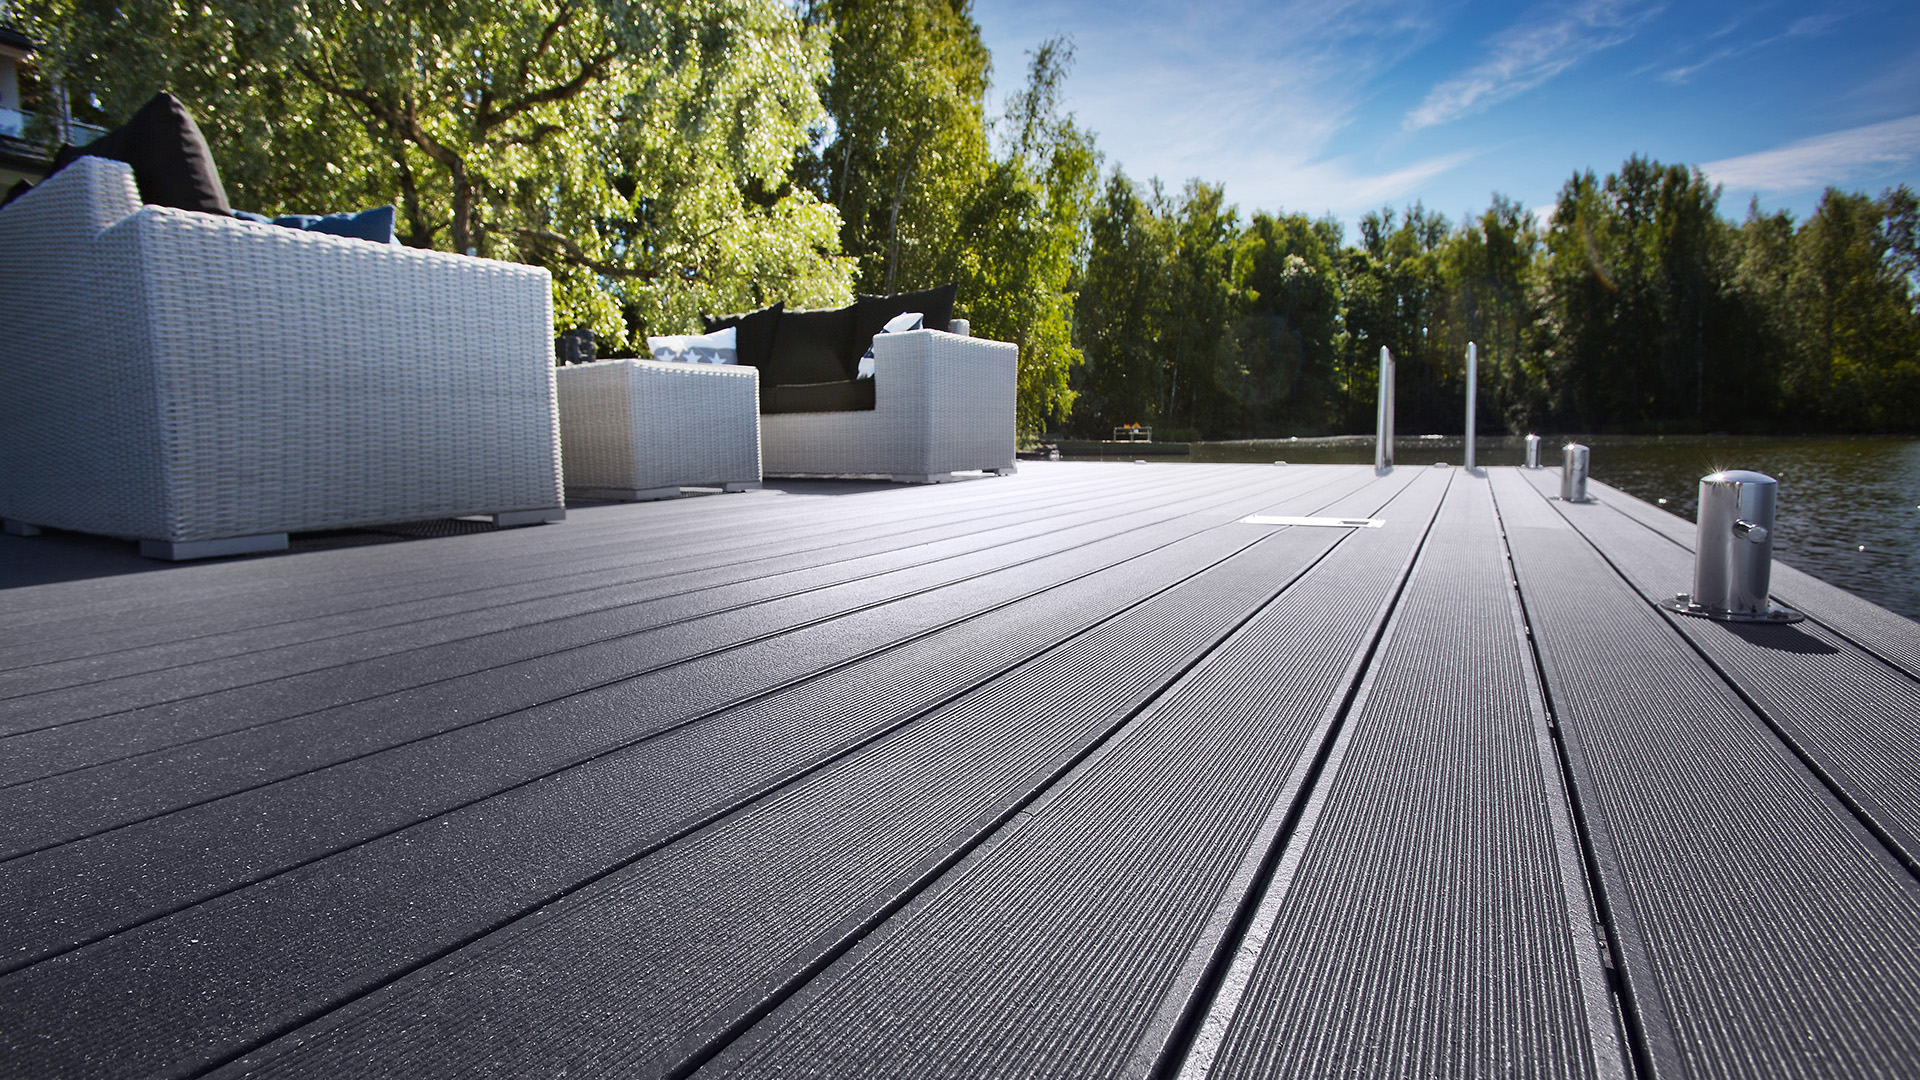 Bett Gebraucht Regensburg Composite Decking Designed To Be Better Upm Profi